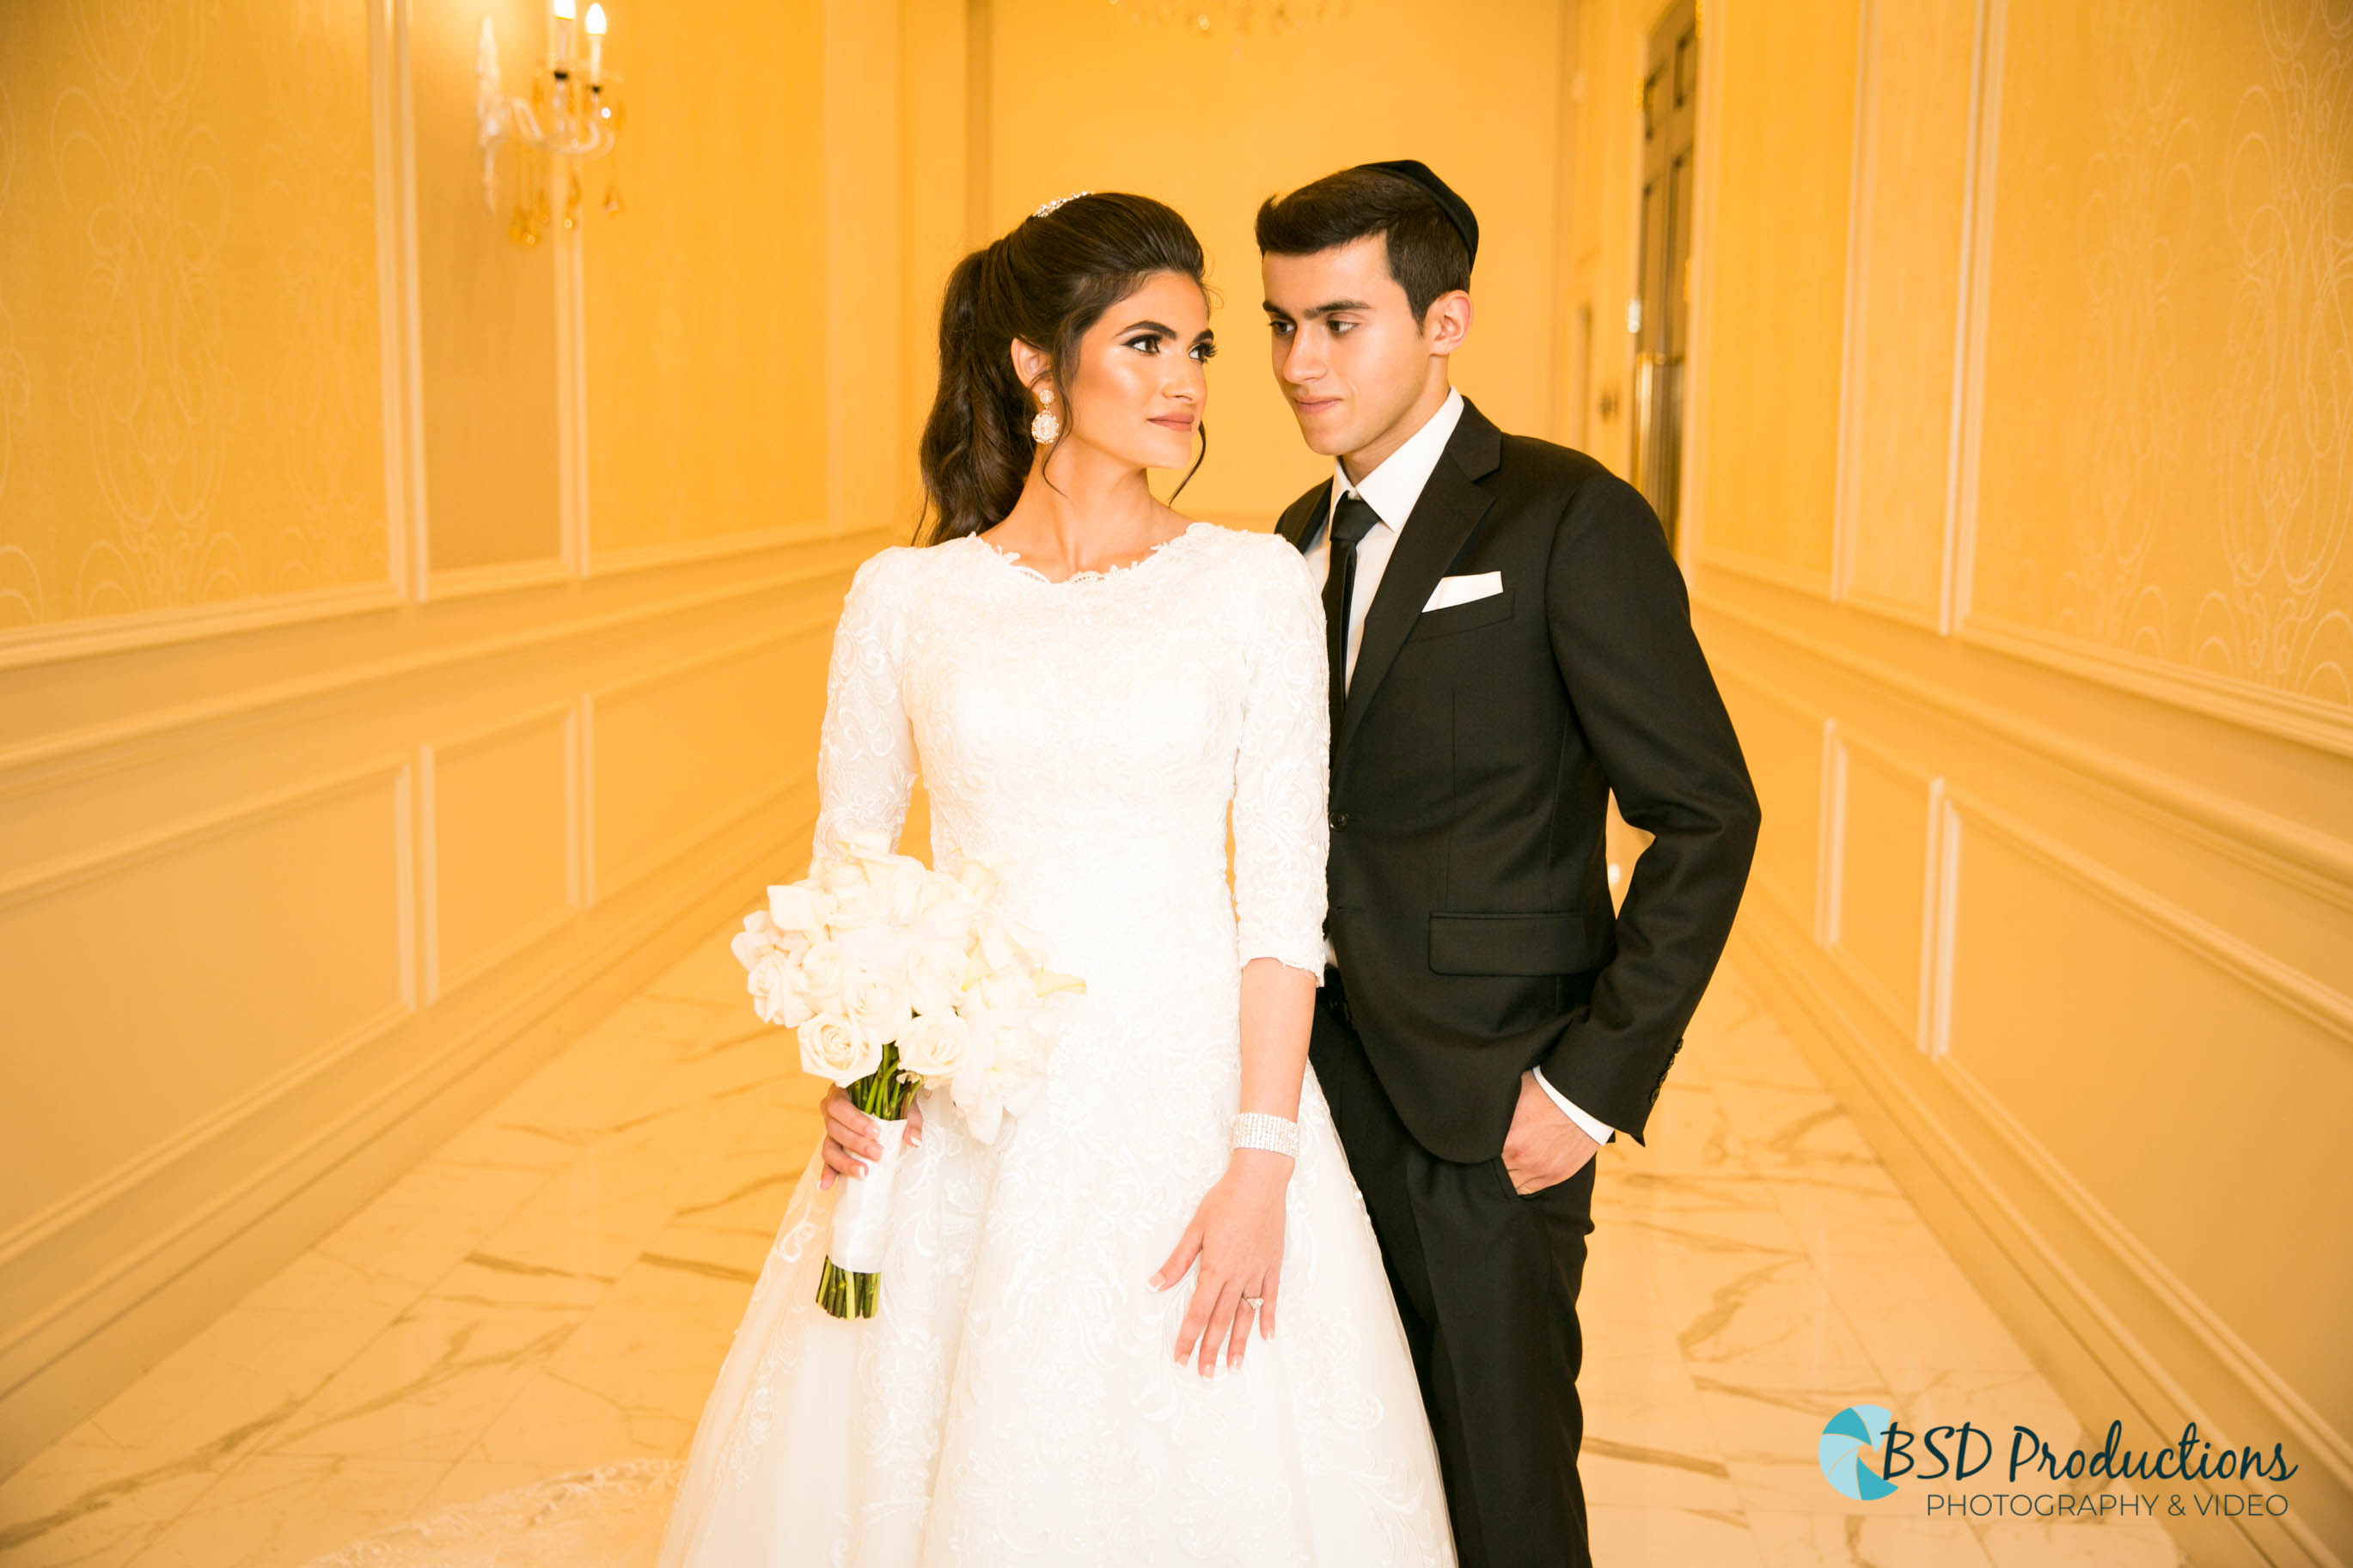 UH5A4821 Wedding – BSD Productions Photography